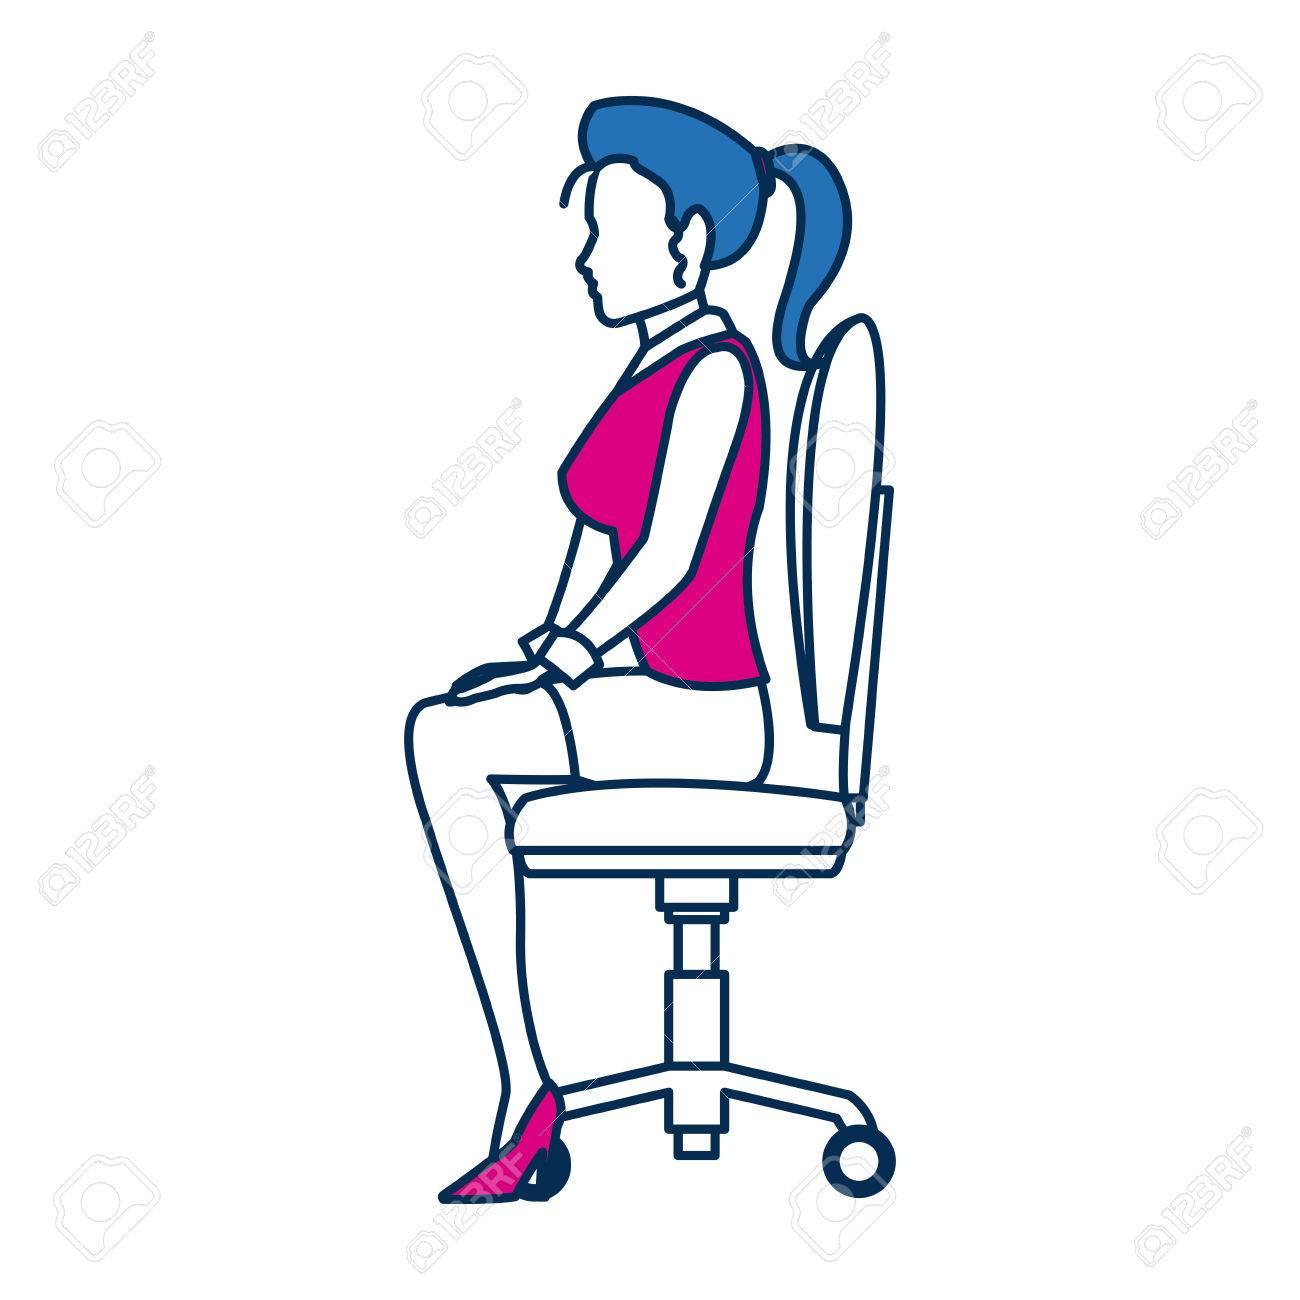 Business Woman Person Sitting Office Chair In Blue And Fuchsia